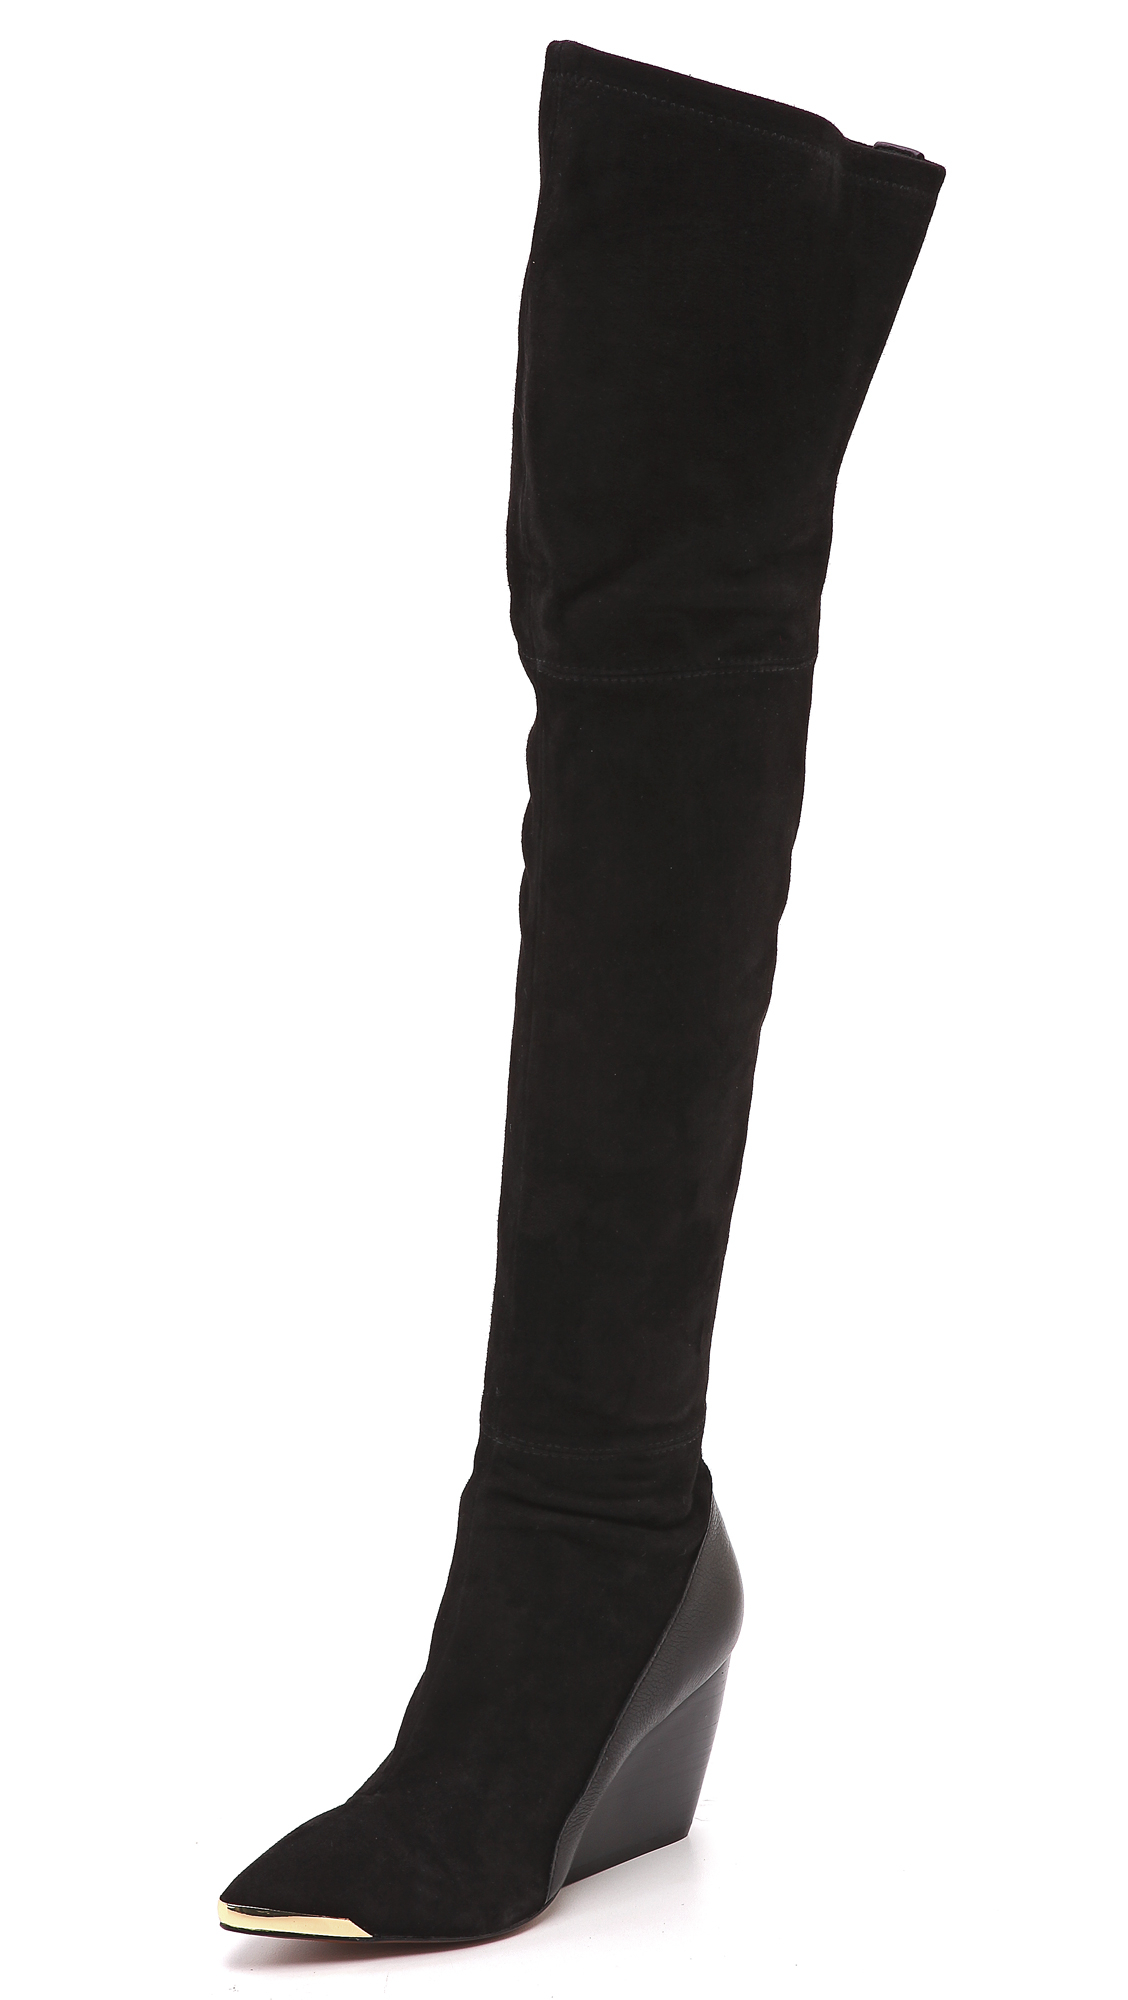 Rachel zoe Nico Over The Knee Wedge Boots Black in Black | Lyst